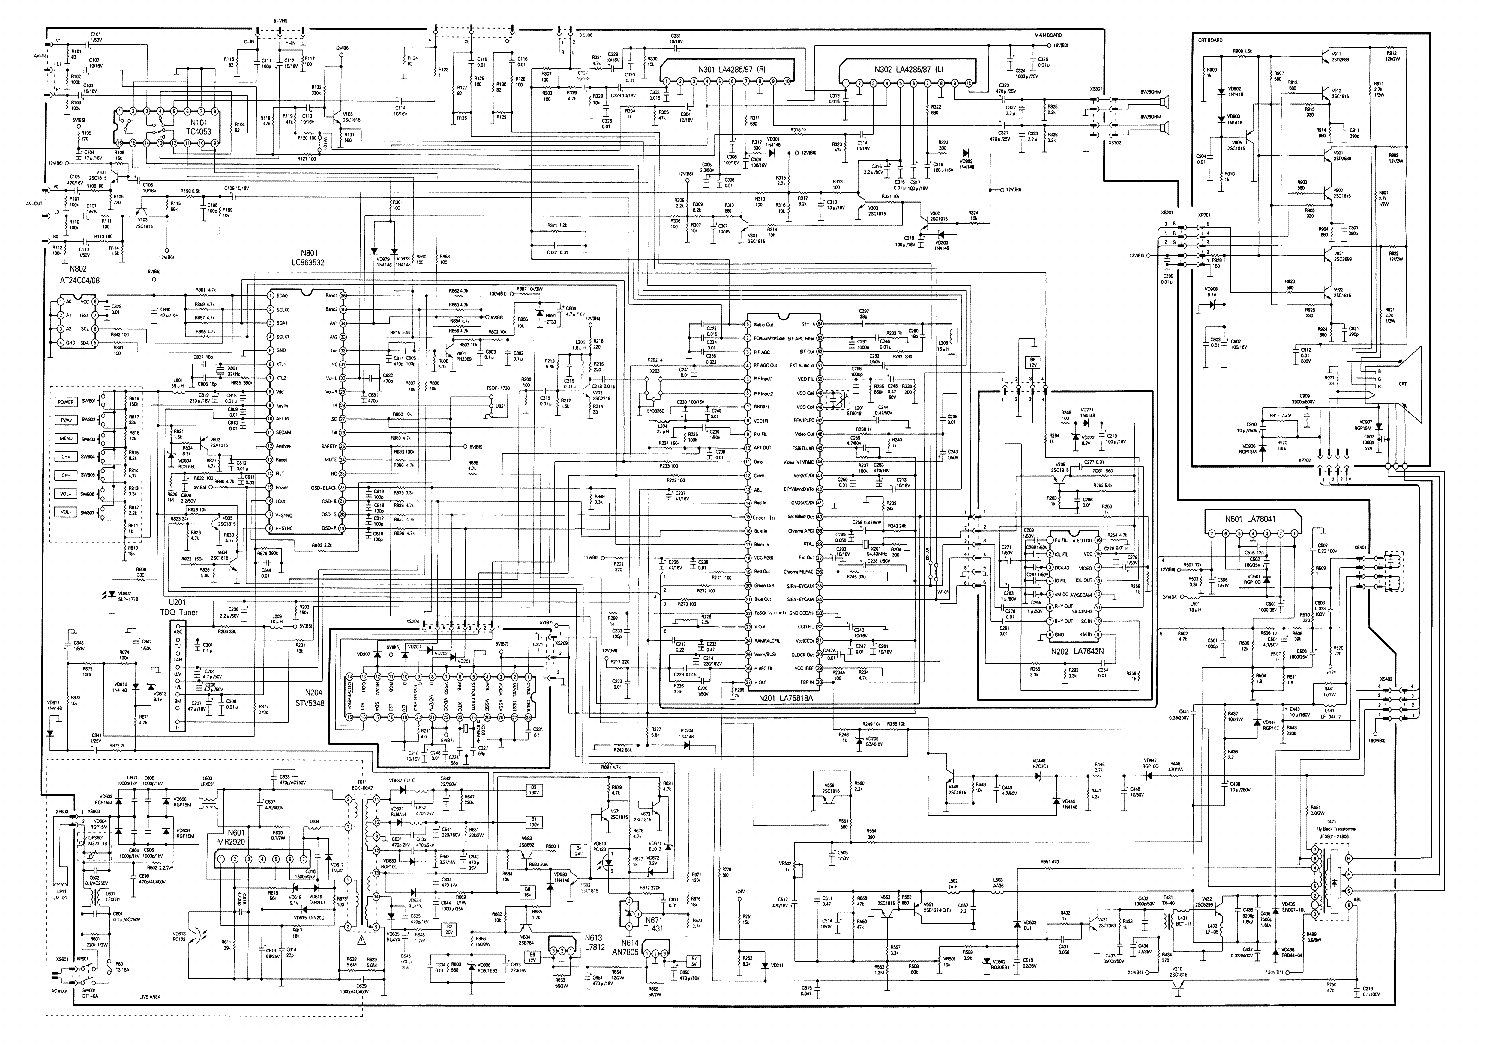 China Tv Diagram Content Resource Of Wiring T V Circuit Mr2920 La78041 Lc863532 La76818 La4285 La4287 Sch Service Rh Elektrotanya Com Chassis Pcb